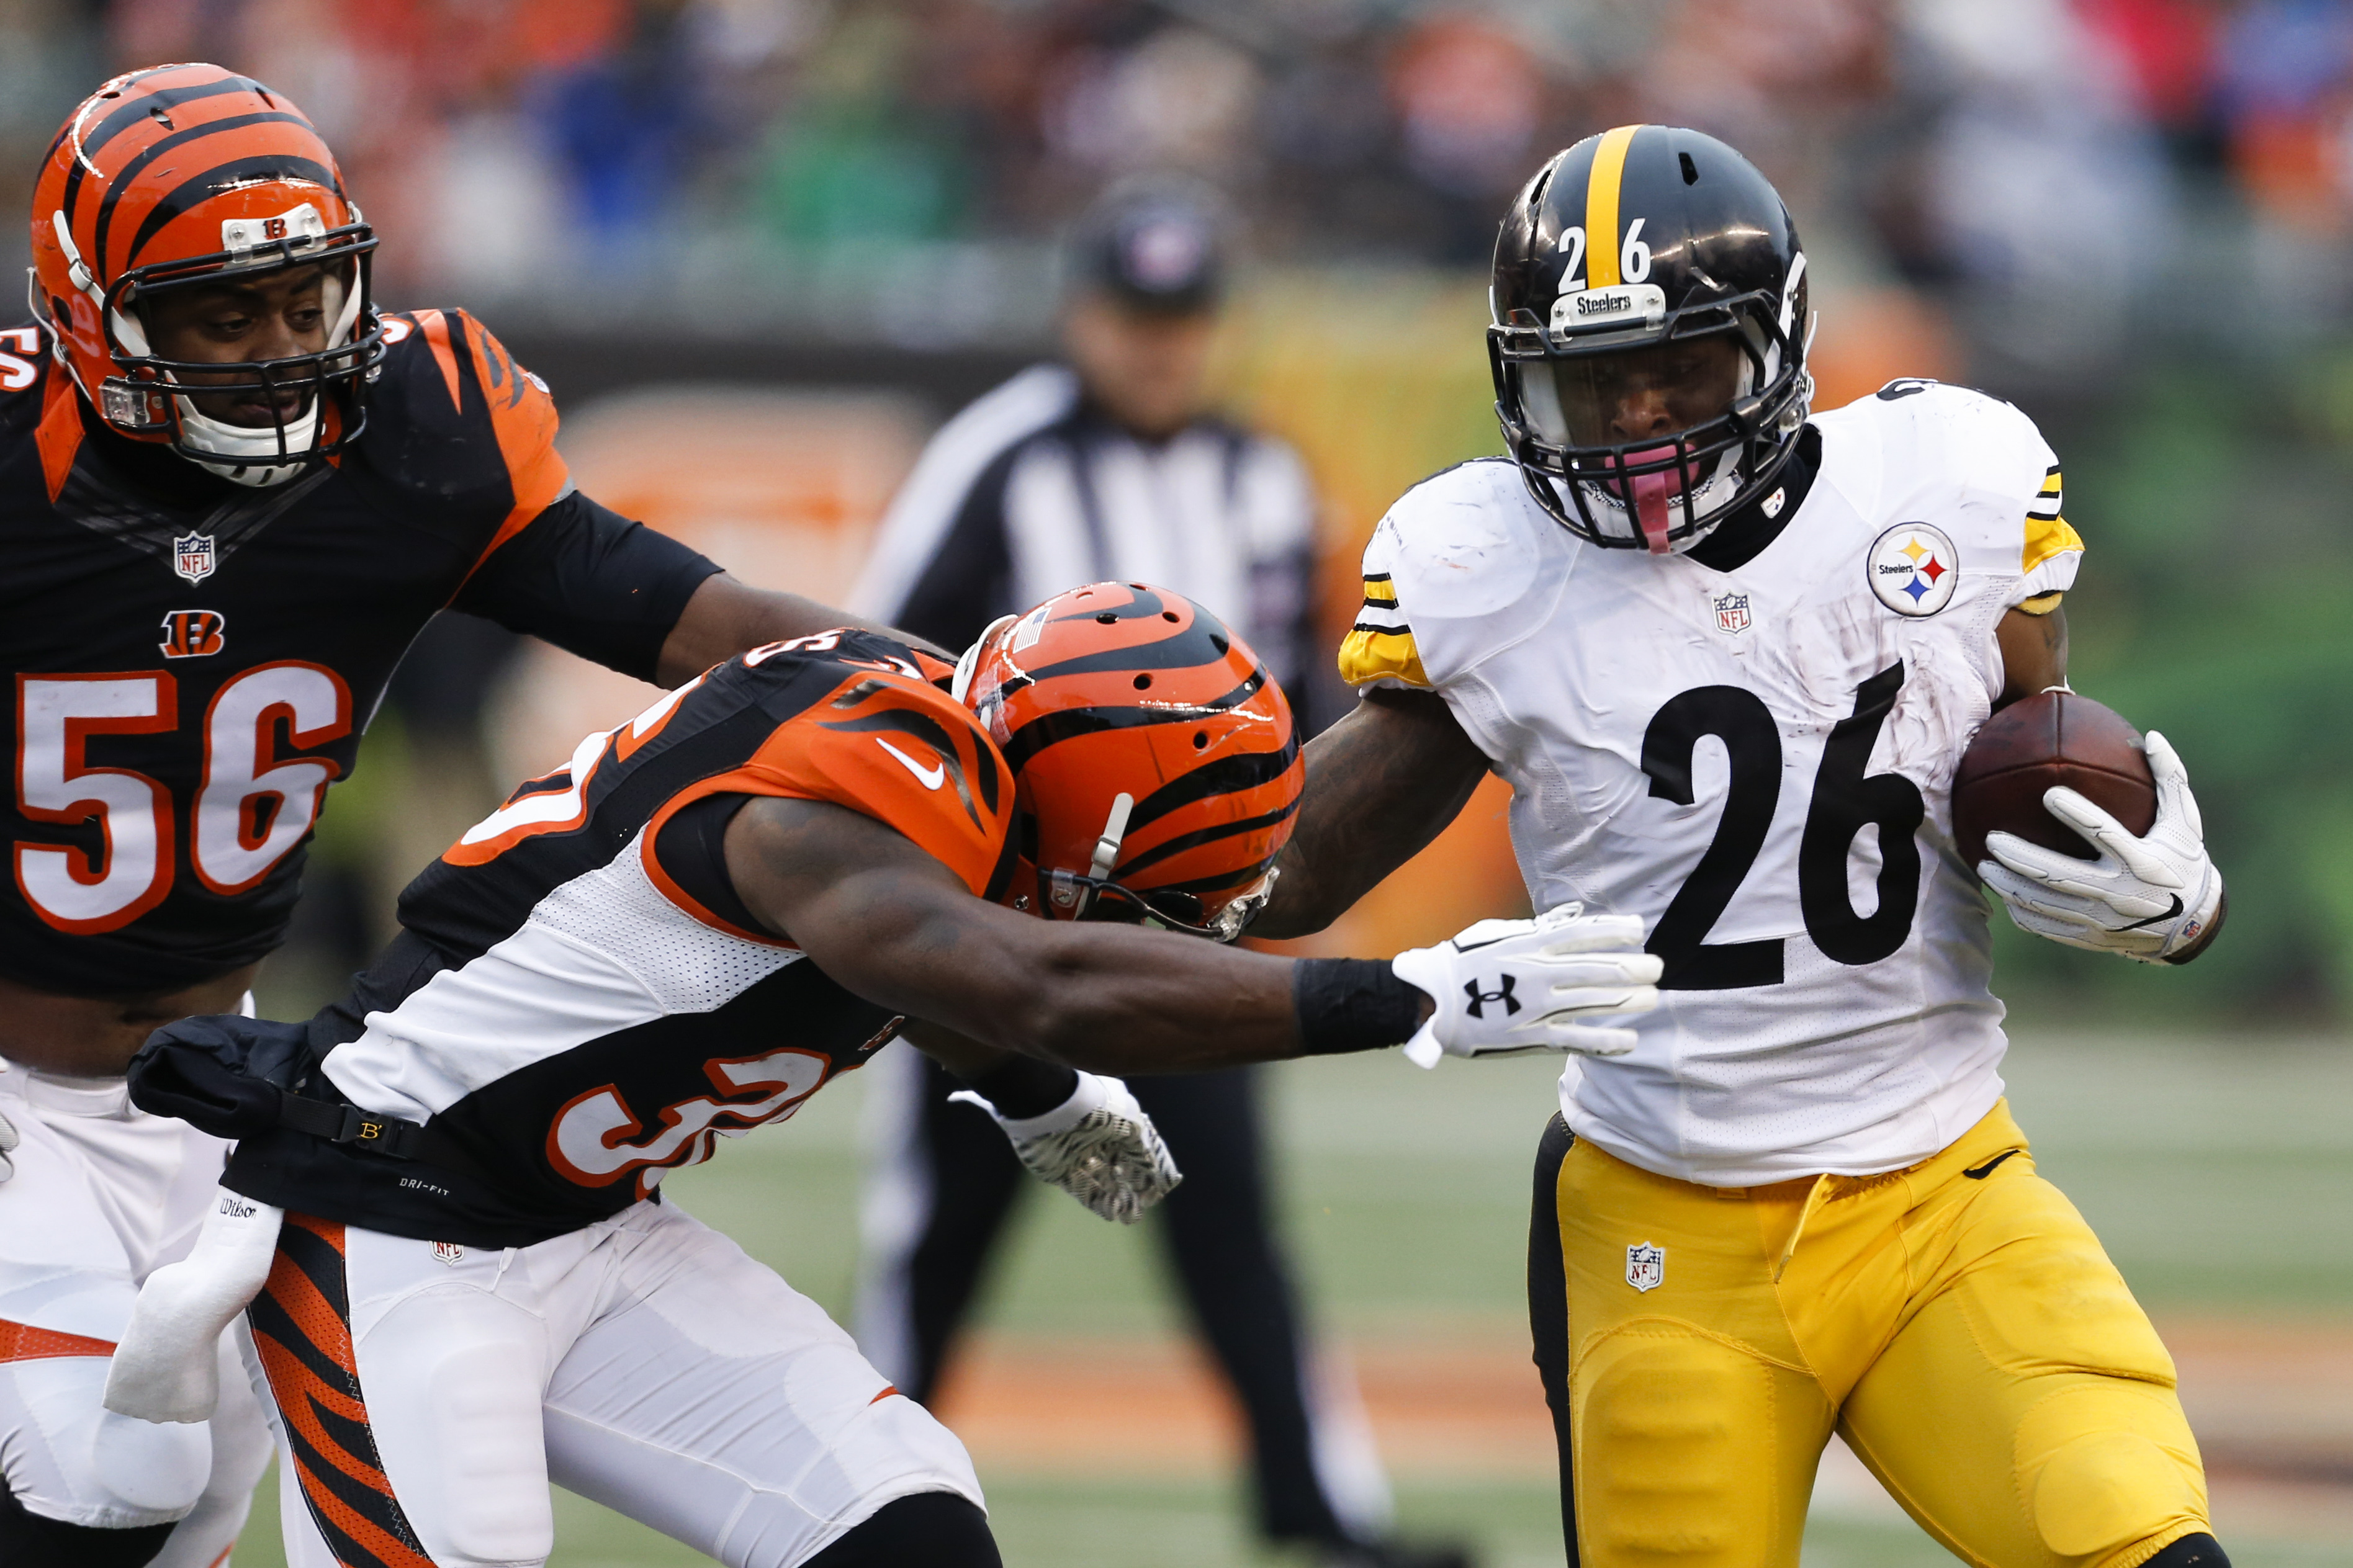 Pittsburgh Steelers running back Le'Veon Bell (26) runs the ball against Cincinnati Bengals strong safety Shawn Williams (36) in the second half of an NFL football game, Sunday, Dec. 18, 2016, in Cincinnati. (AP Photo/Gary Landers)